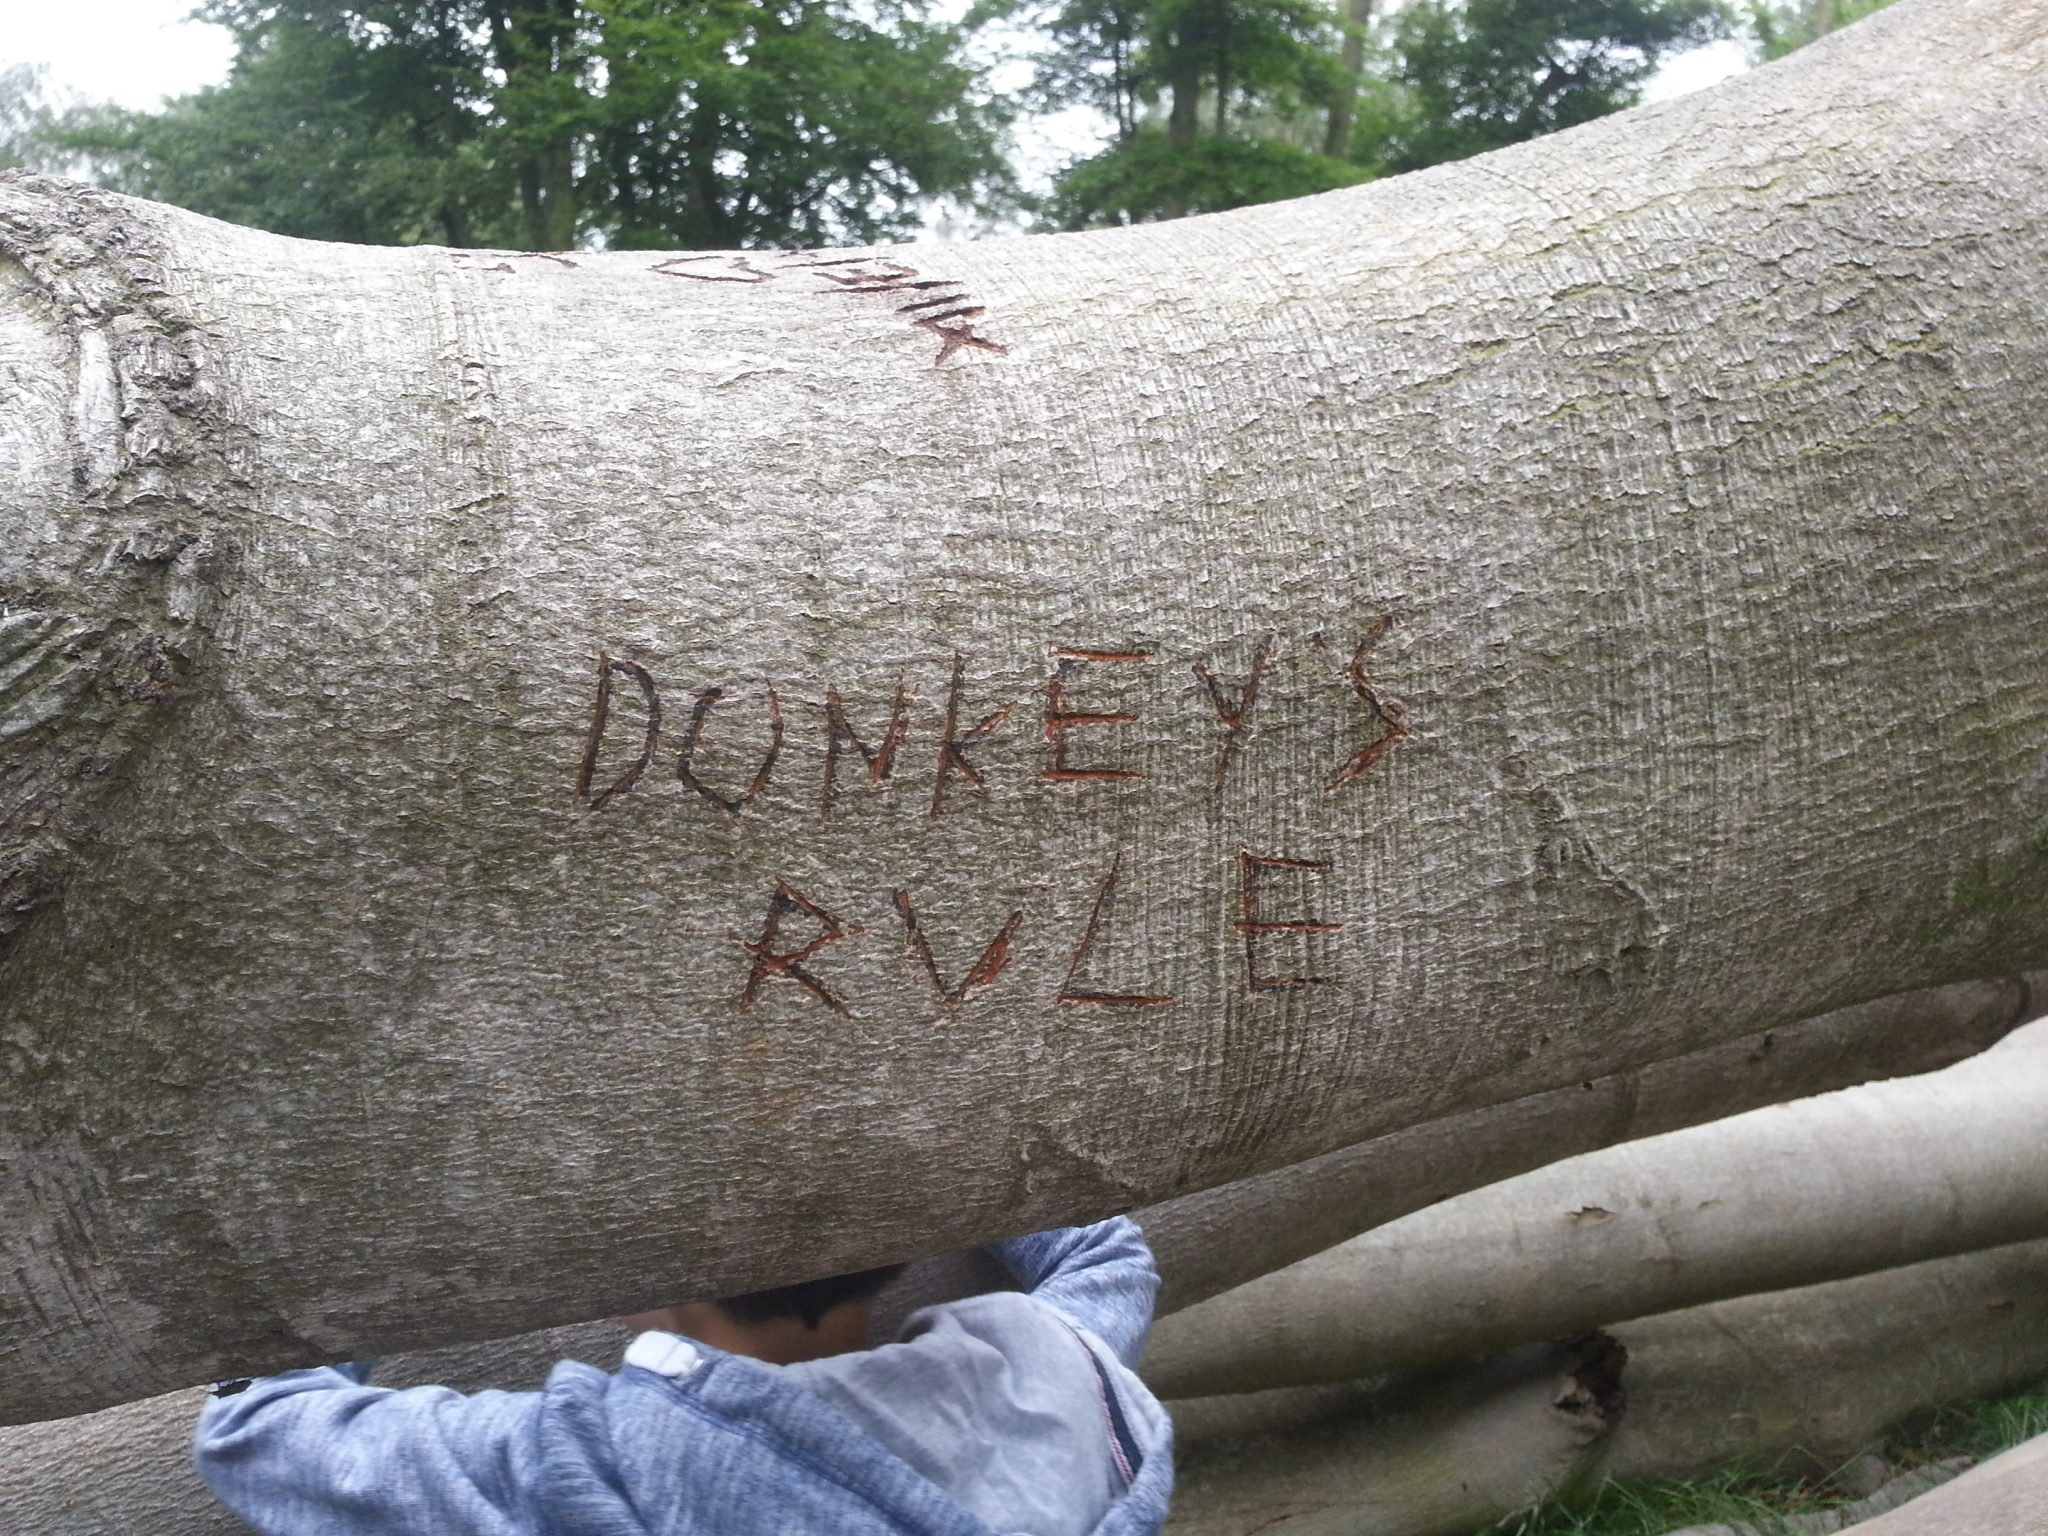 Donkeys Rule